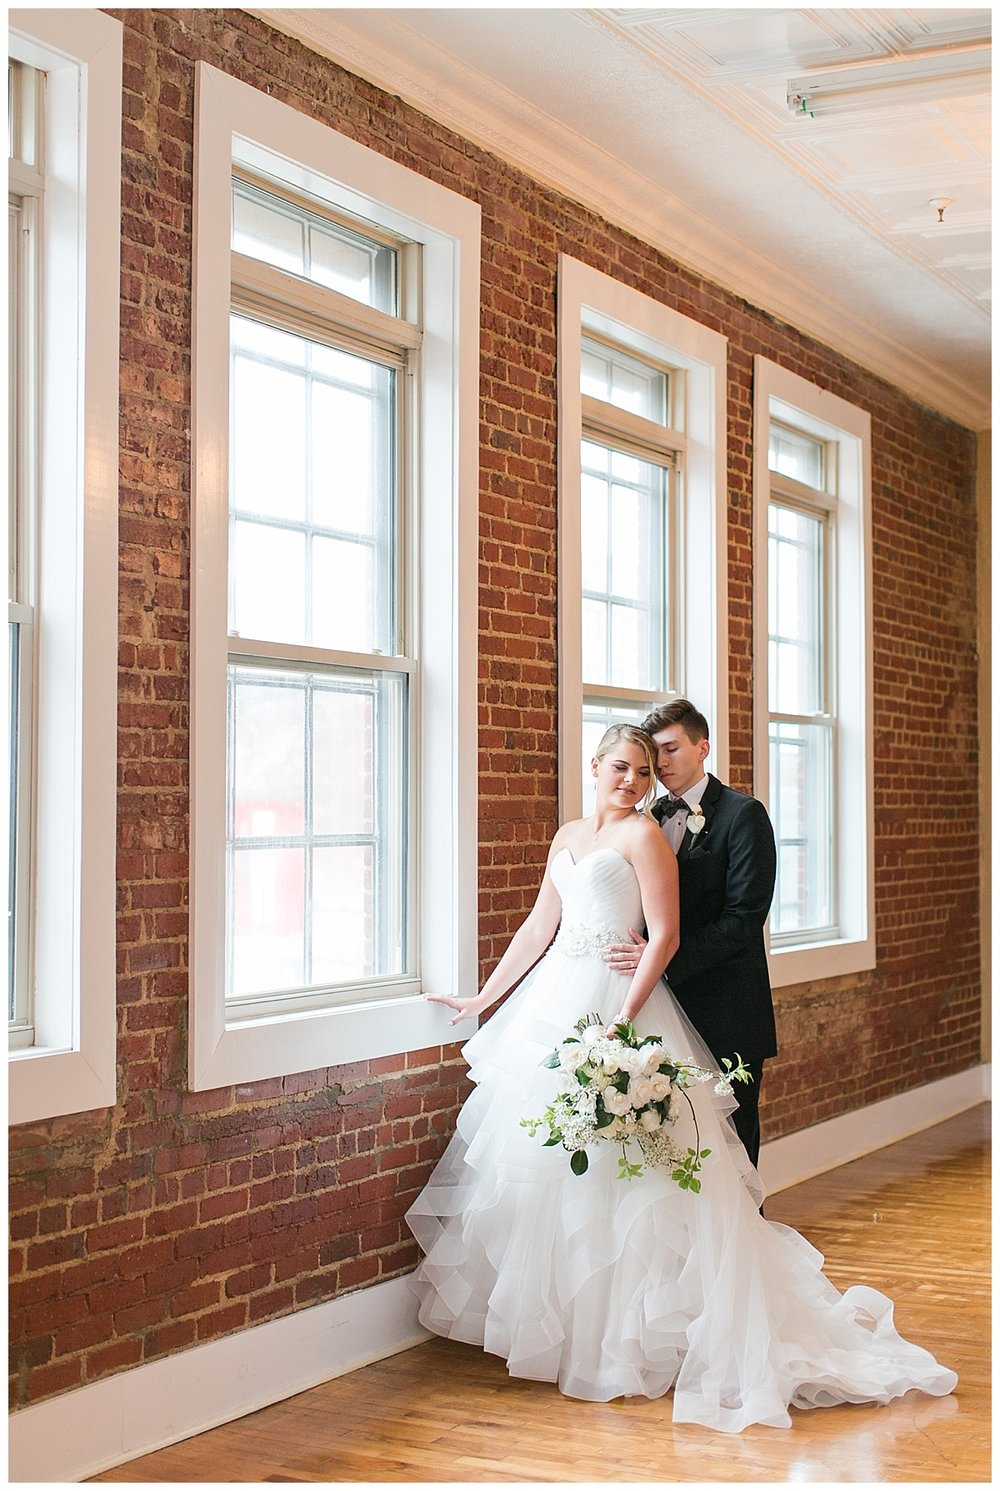 Scott's_Downtown_Monroe_Ga_Wedding_Photograpehrs_0020.jpg